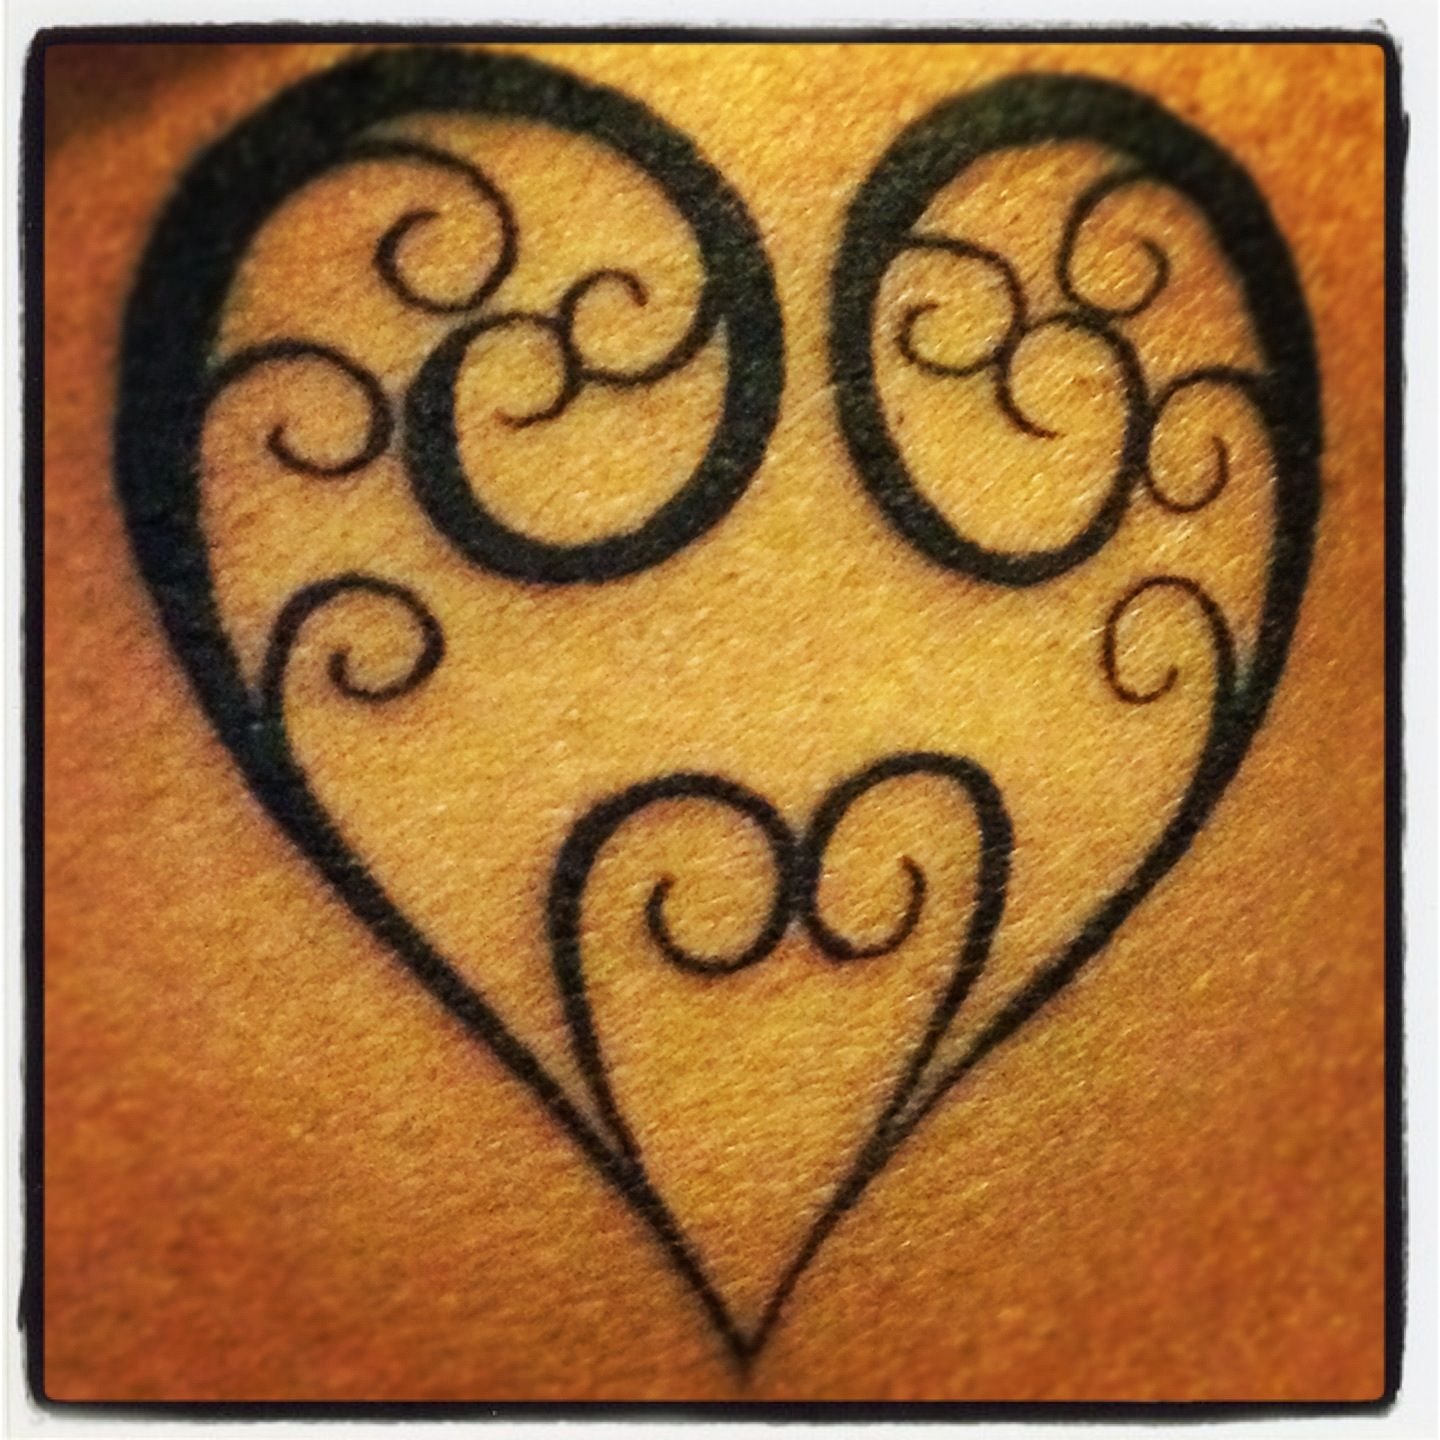 New tattoo on my ribcage :) Fern fronds heart by Dylan at Tattoo City in Wellington, NZ.